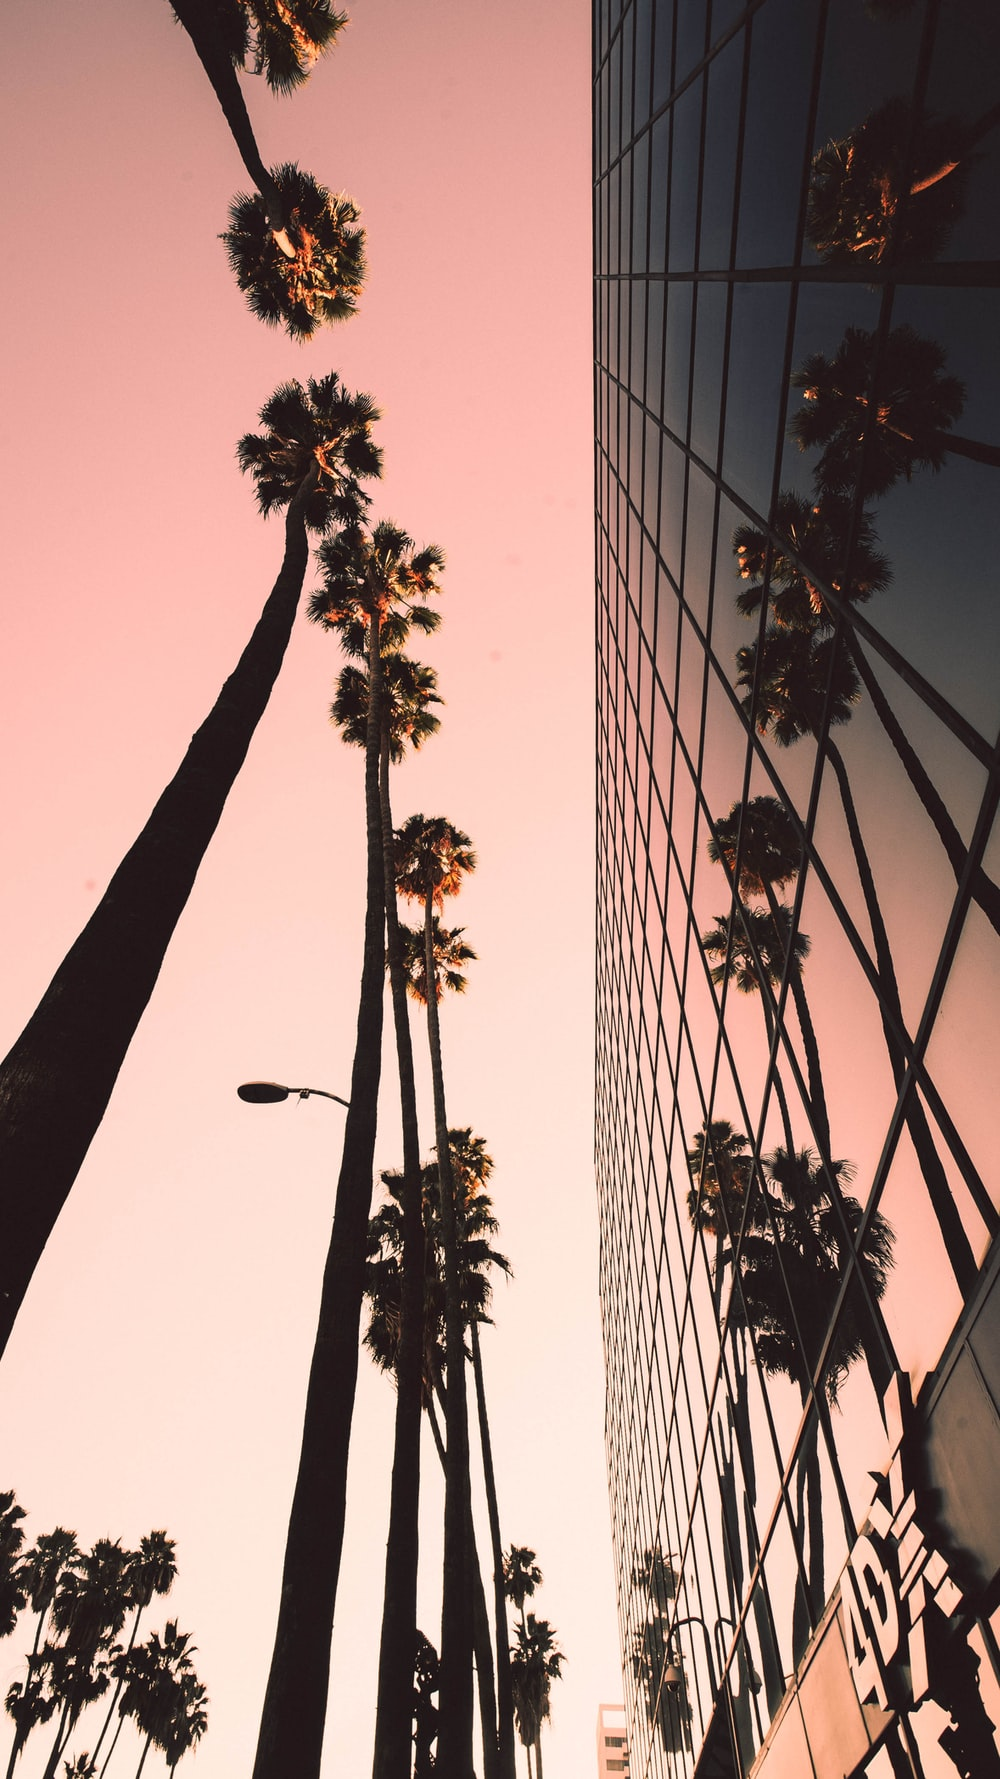 low-angle photograph of palm trees beside building